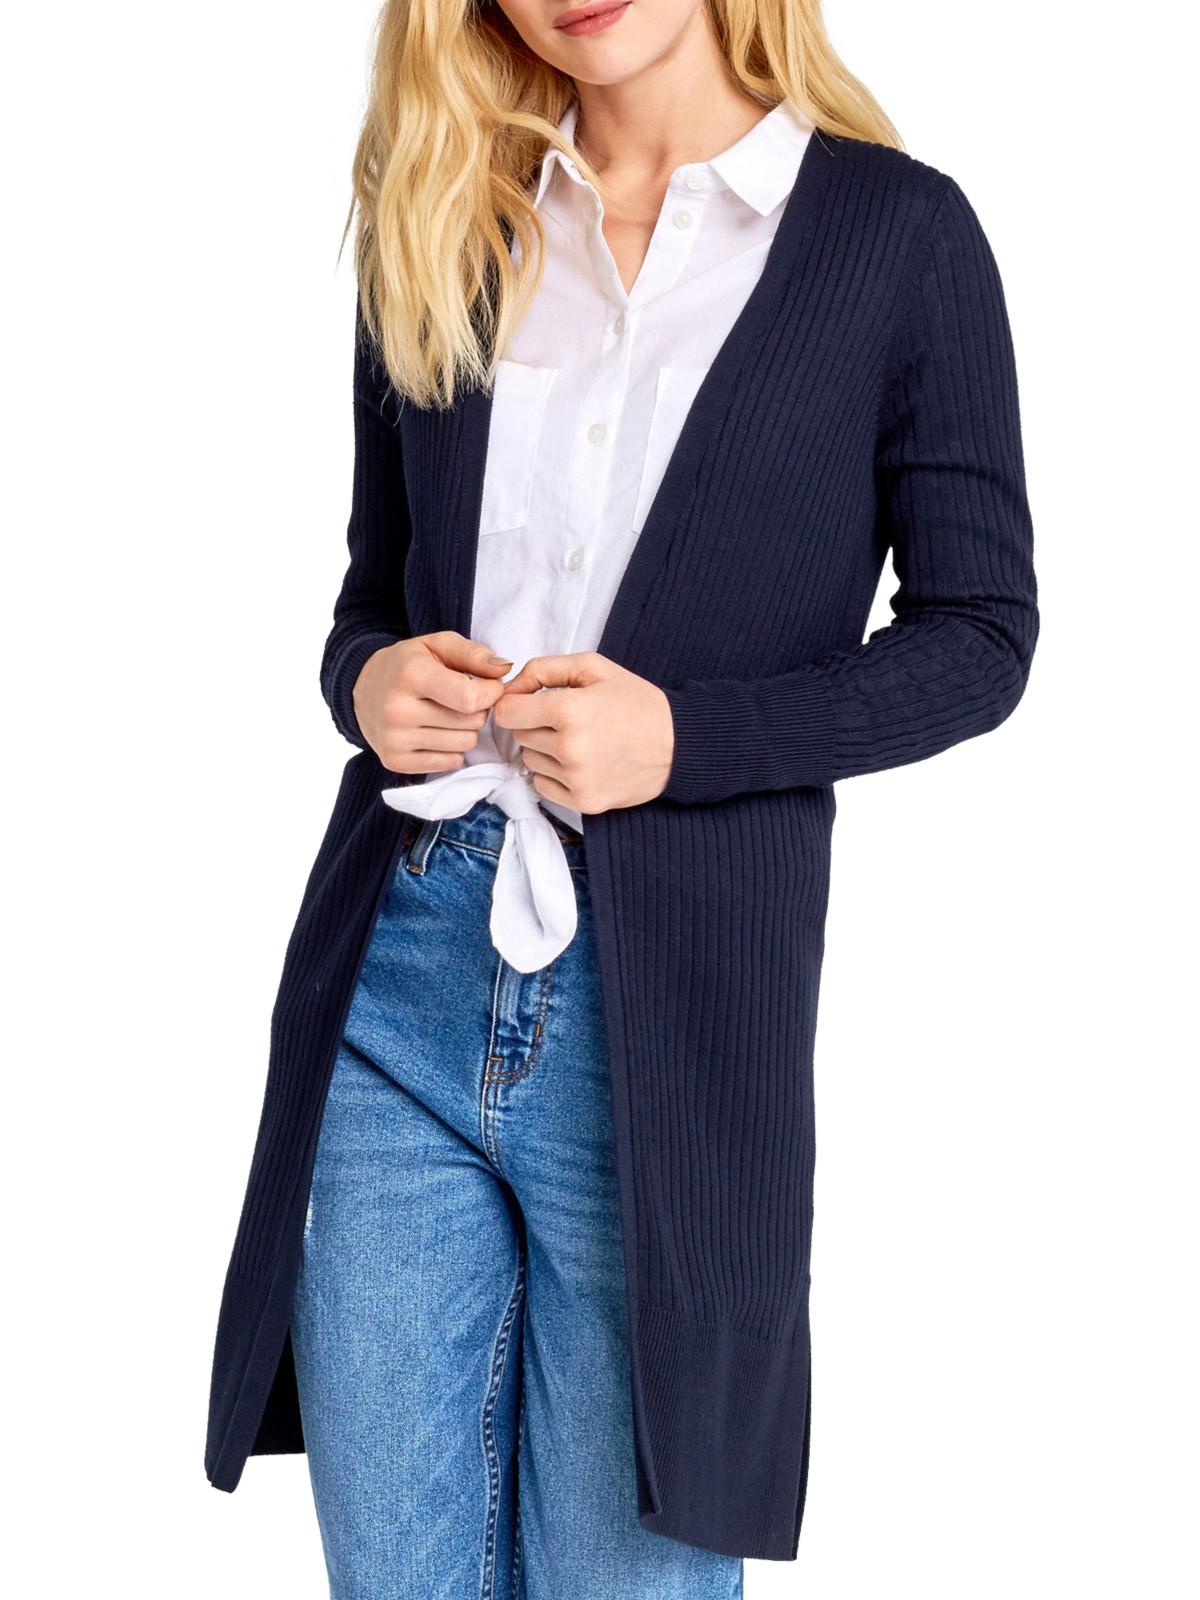 Oasis Synthetic All Over Rib Edge To Edge Cardigan in Navy (Blue)